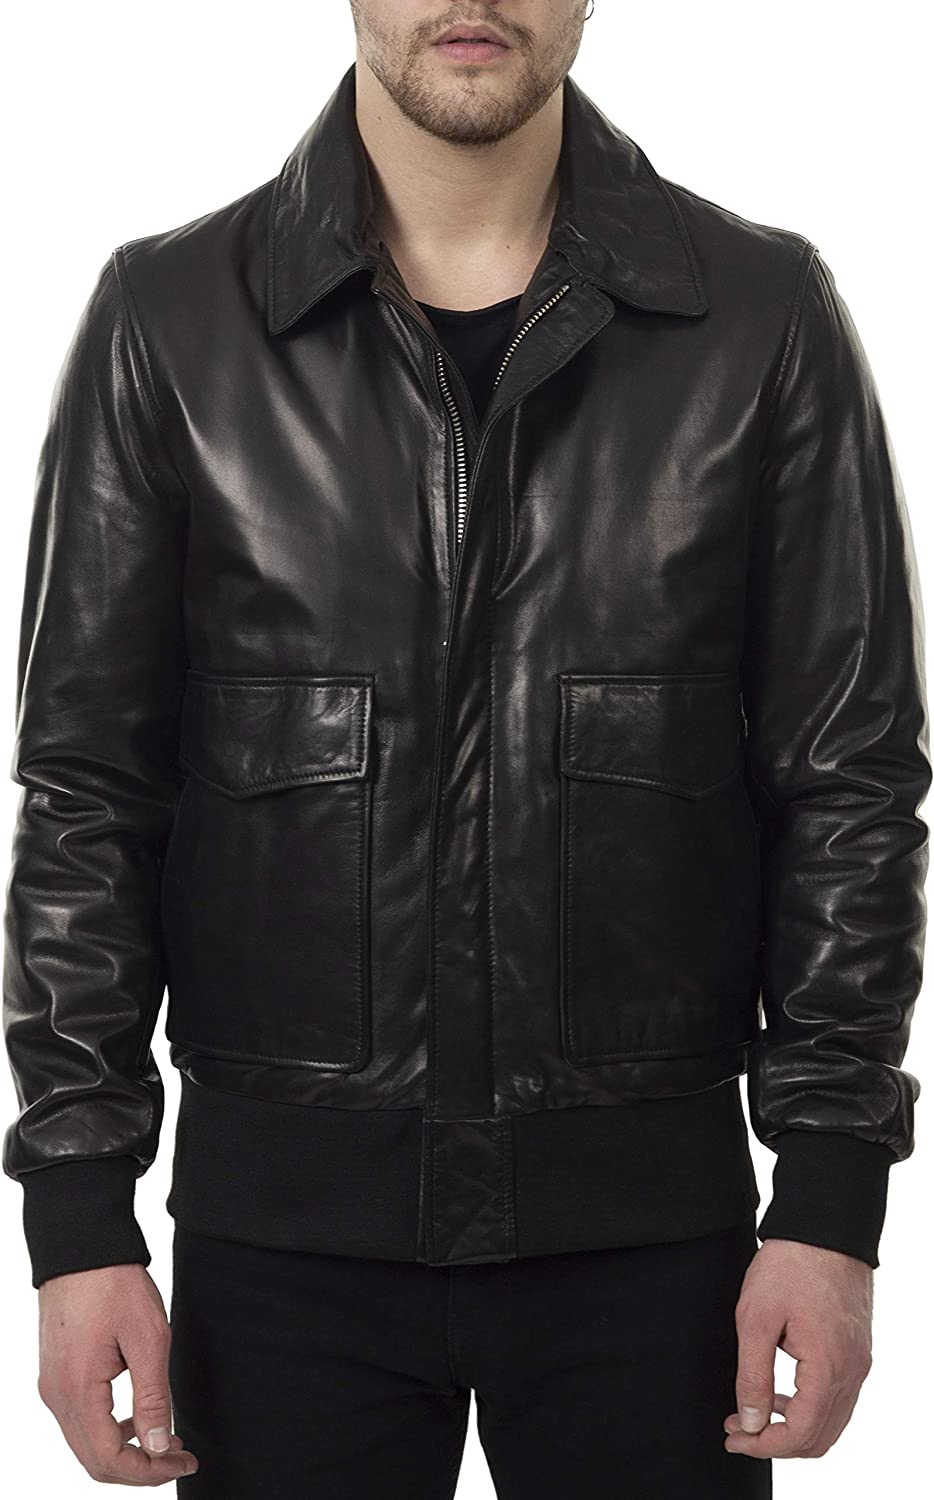 Mens Jacket Real Soft Lambskin Leather Zipper Closure Shearling Double Collar Elasticated Waist and Cuffs Black